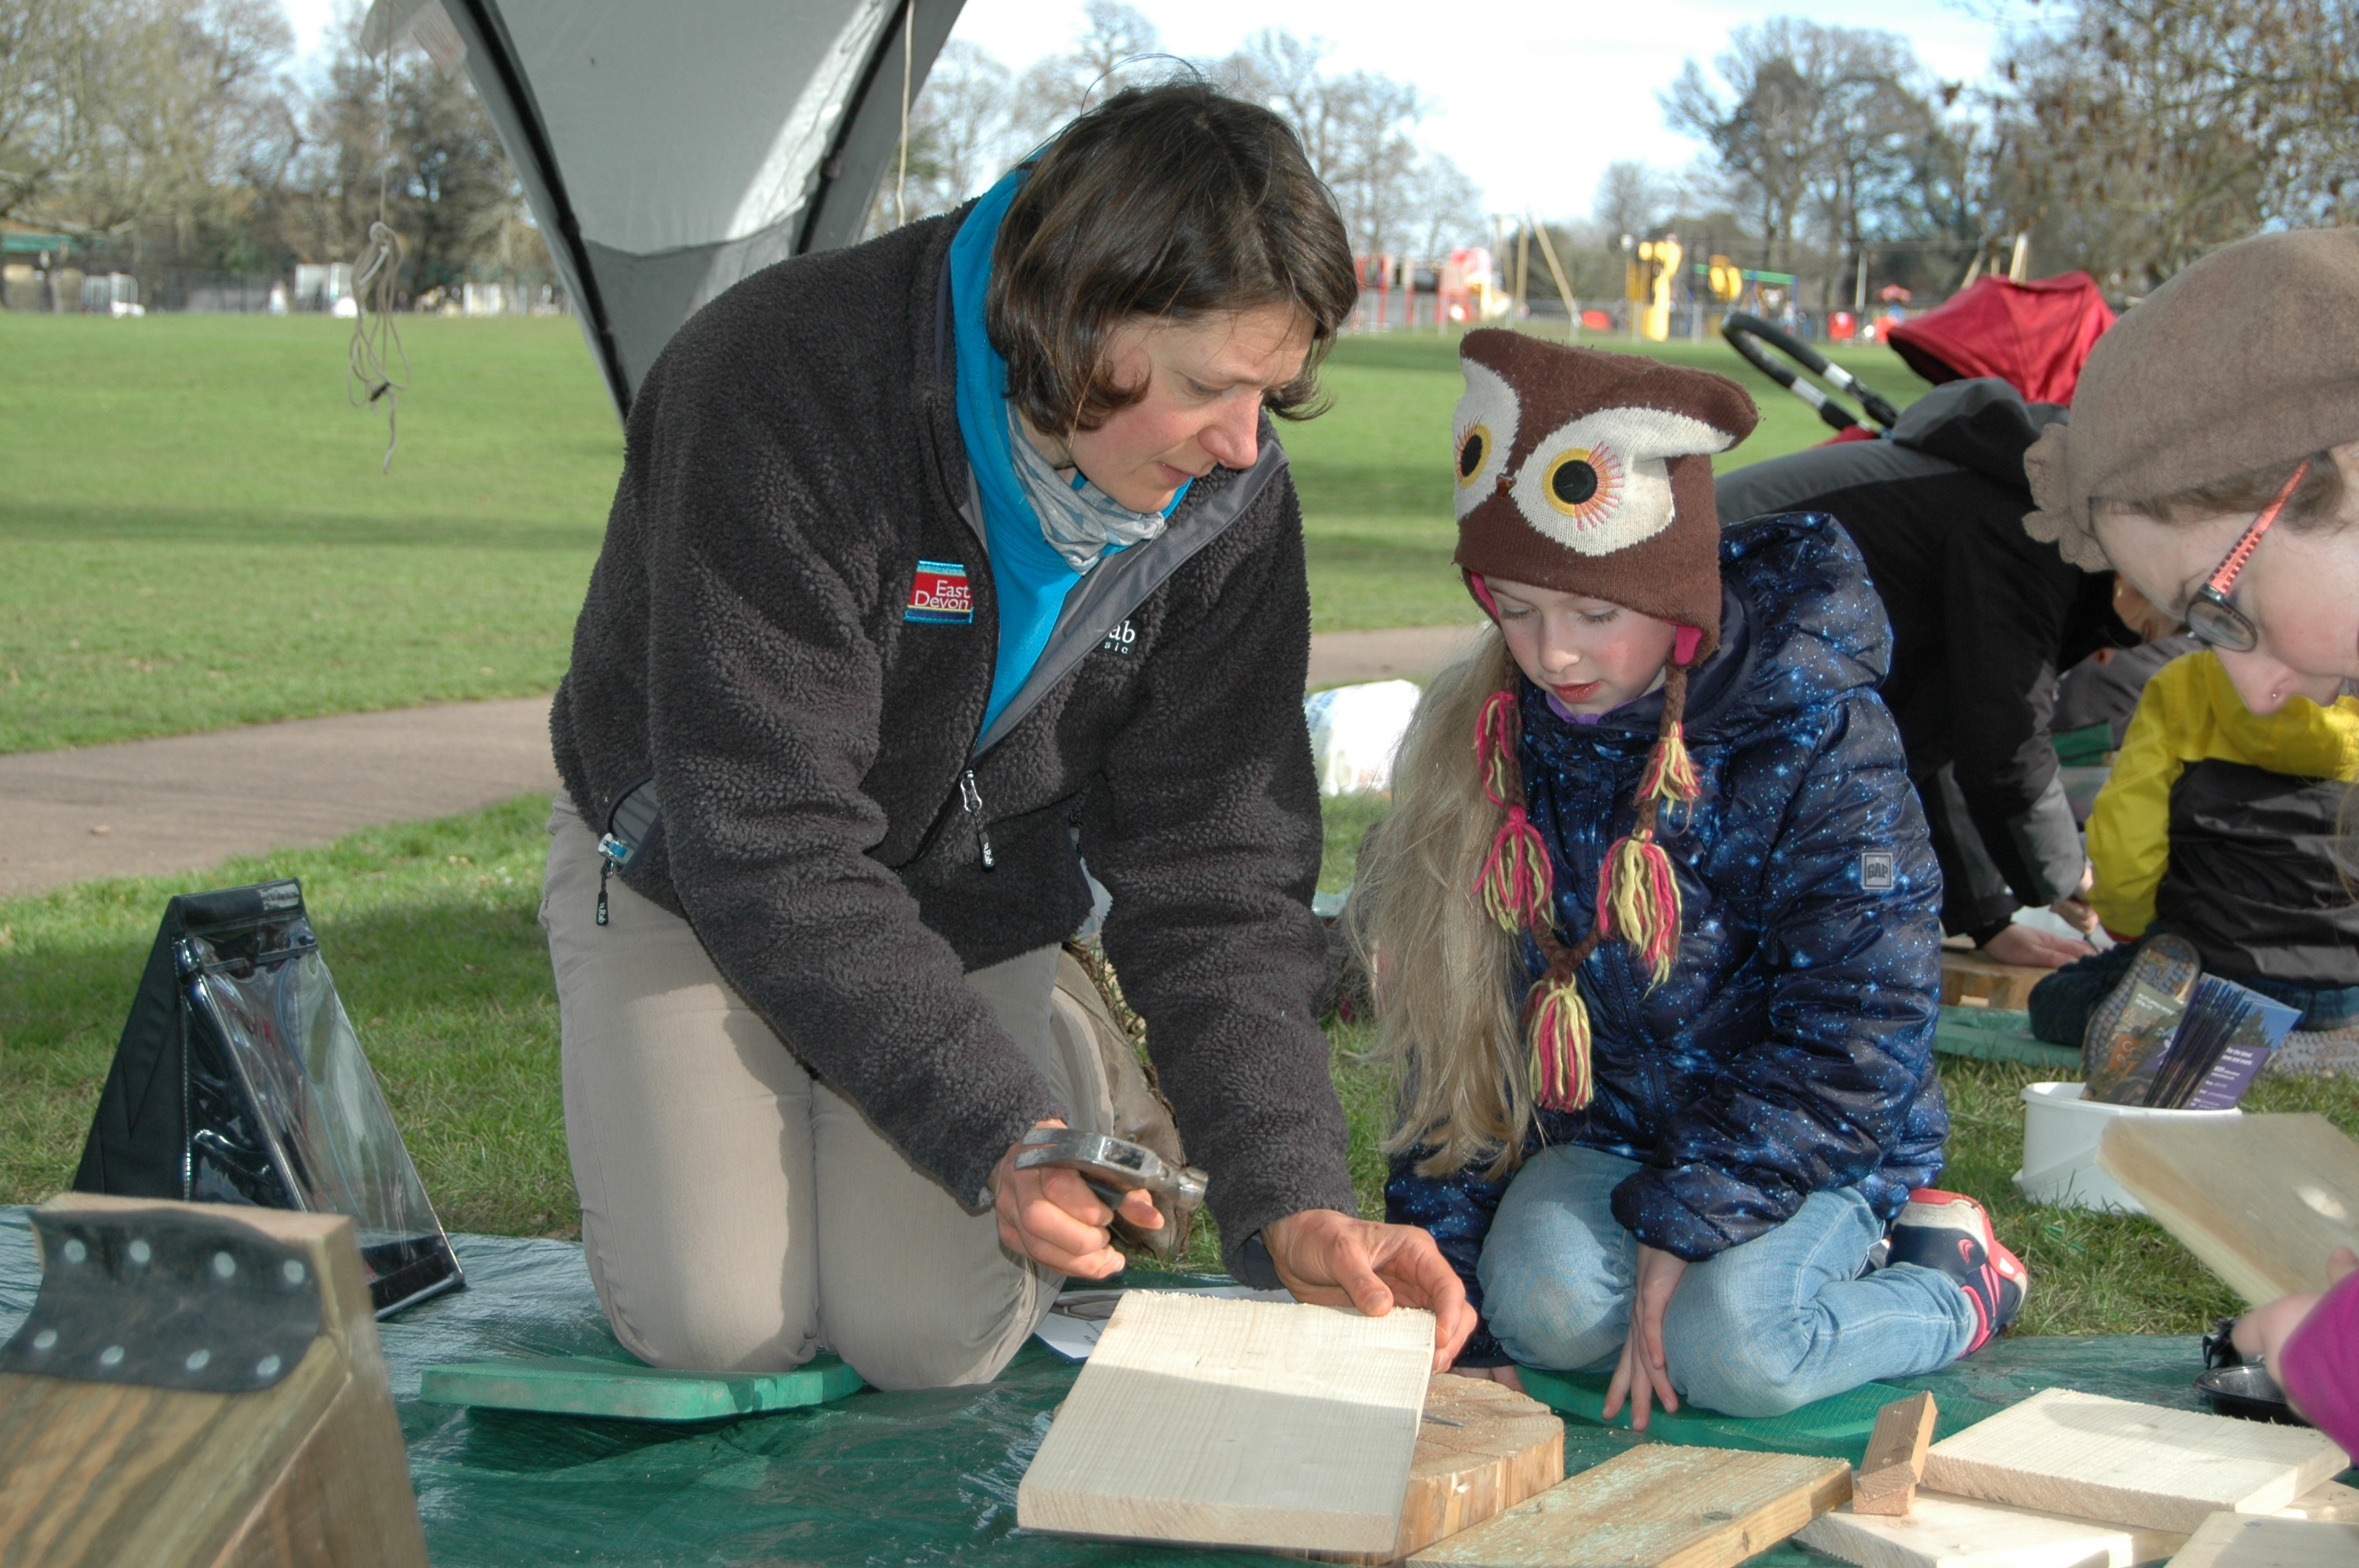 Nest box building 19 February 10am to 11.30am